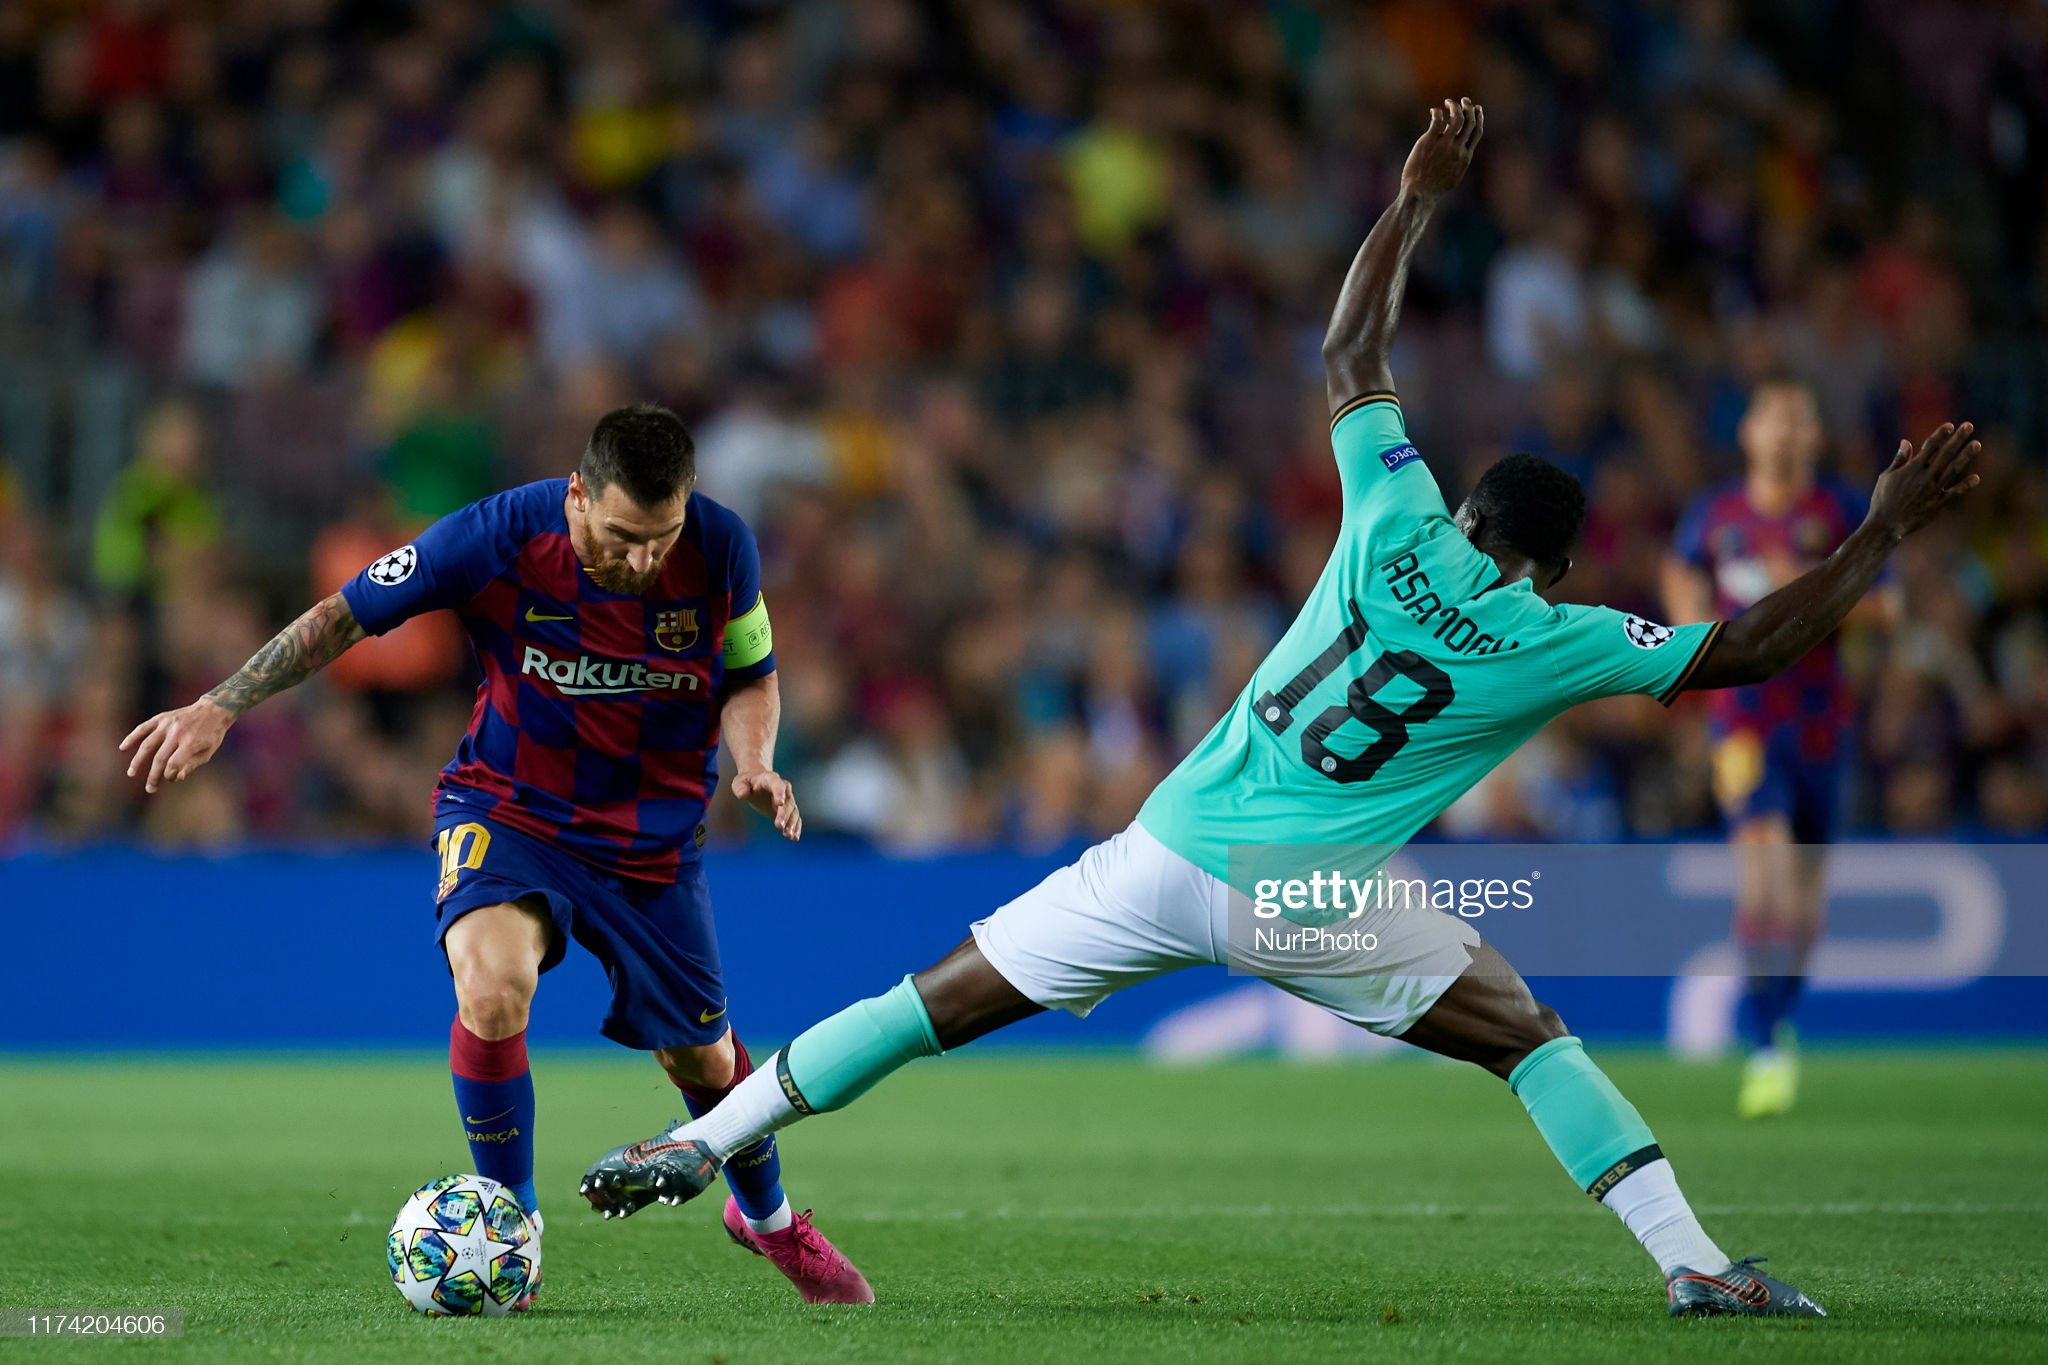 Inter v Barcelona preview, prediction and odds